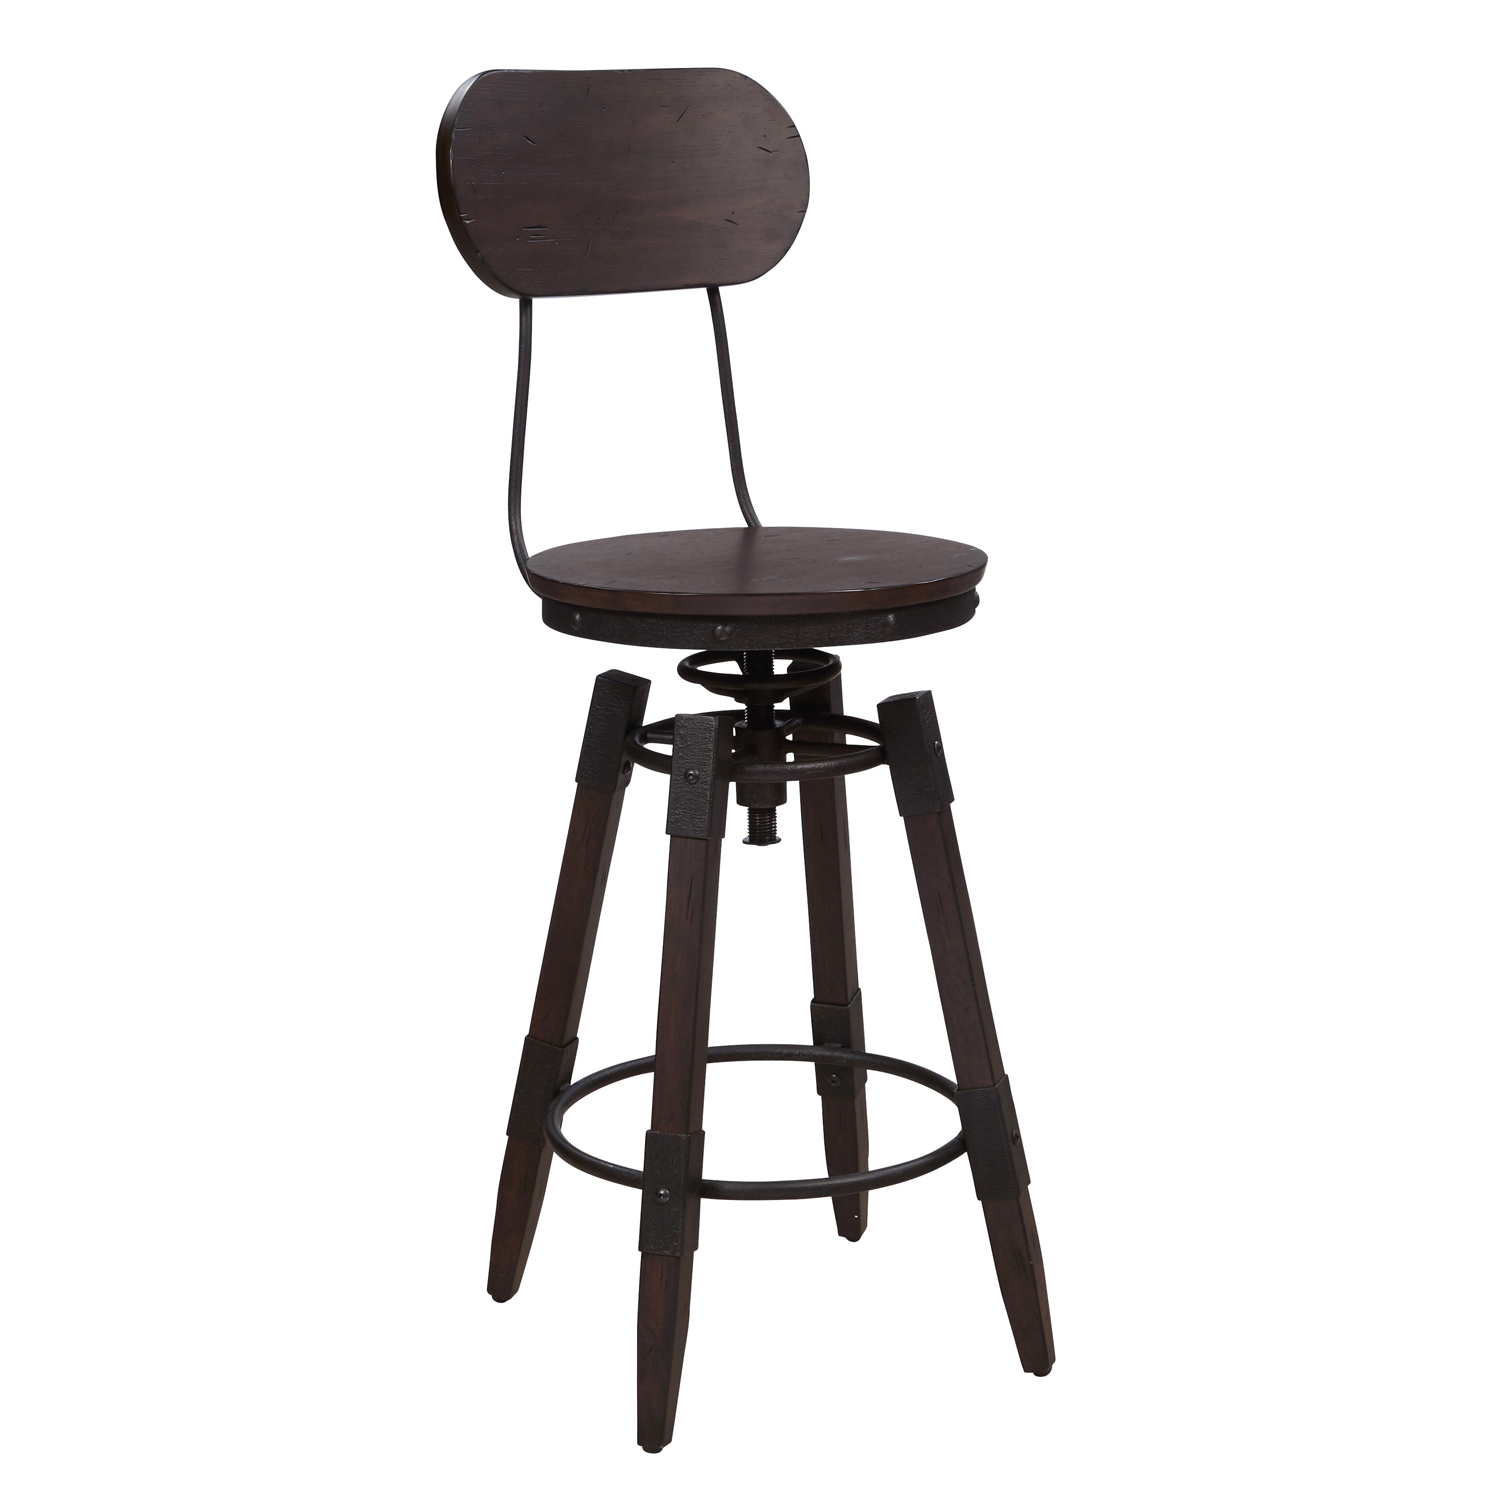 Vintage Industrial Style Swivel Chocolate Bar Stool Industrial